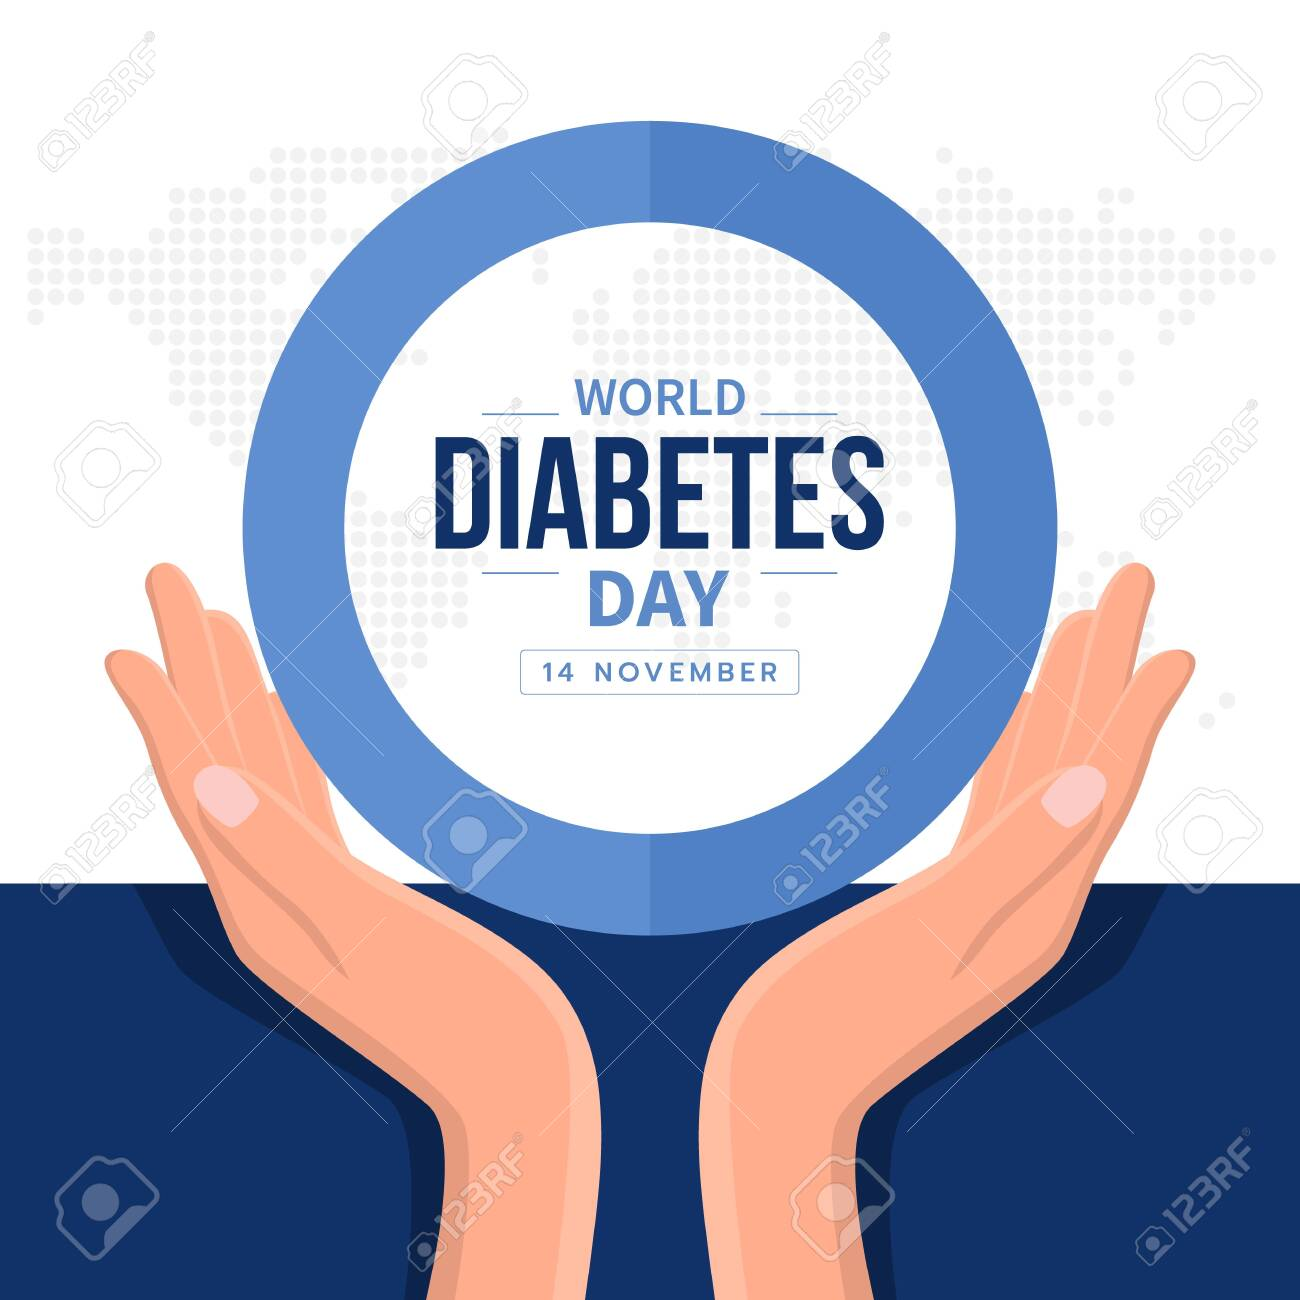 World diabetes day banner with hand hold care text in blue circle ring sign and abstract dot map earth world texture - 128690977